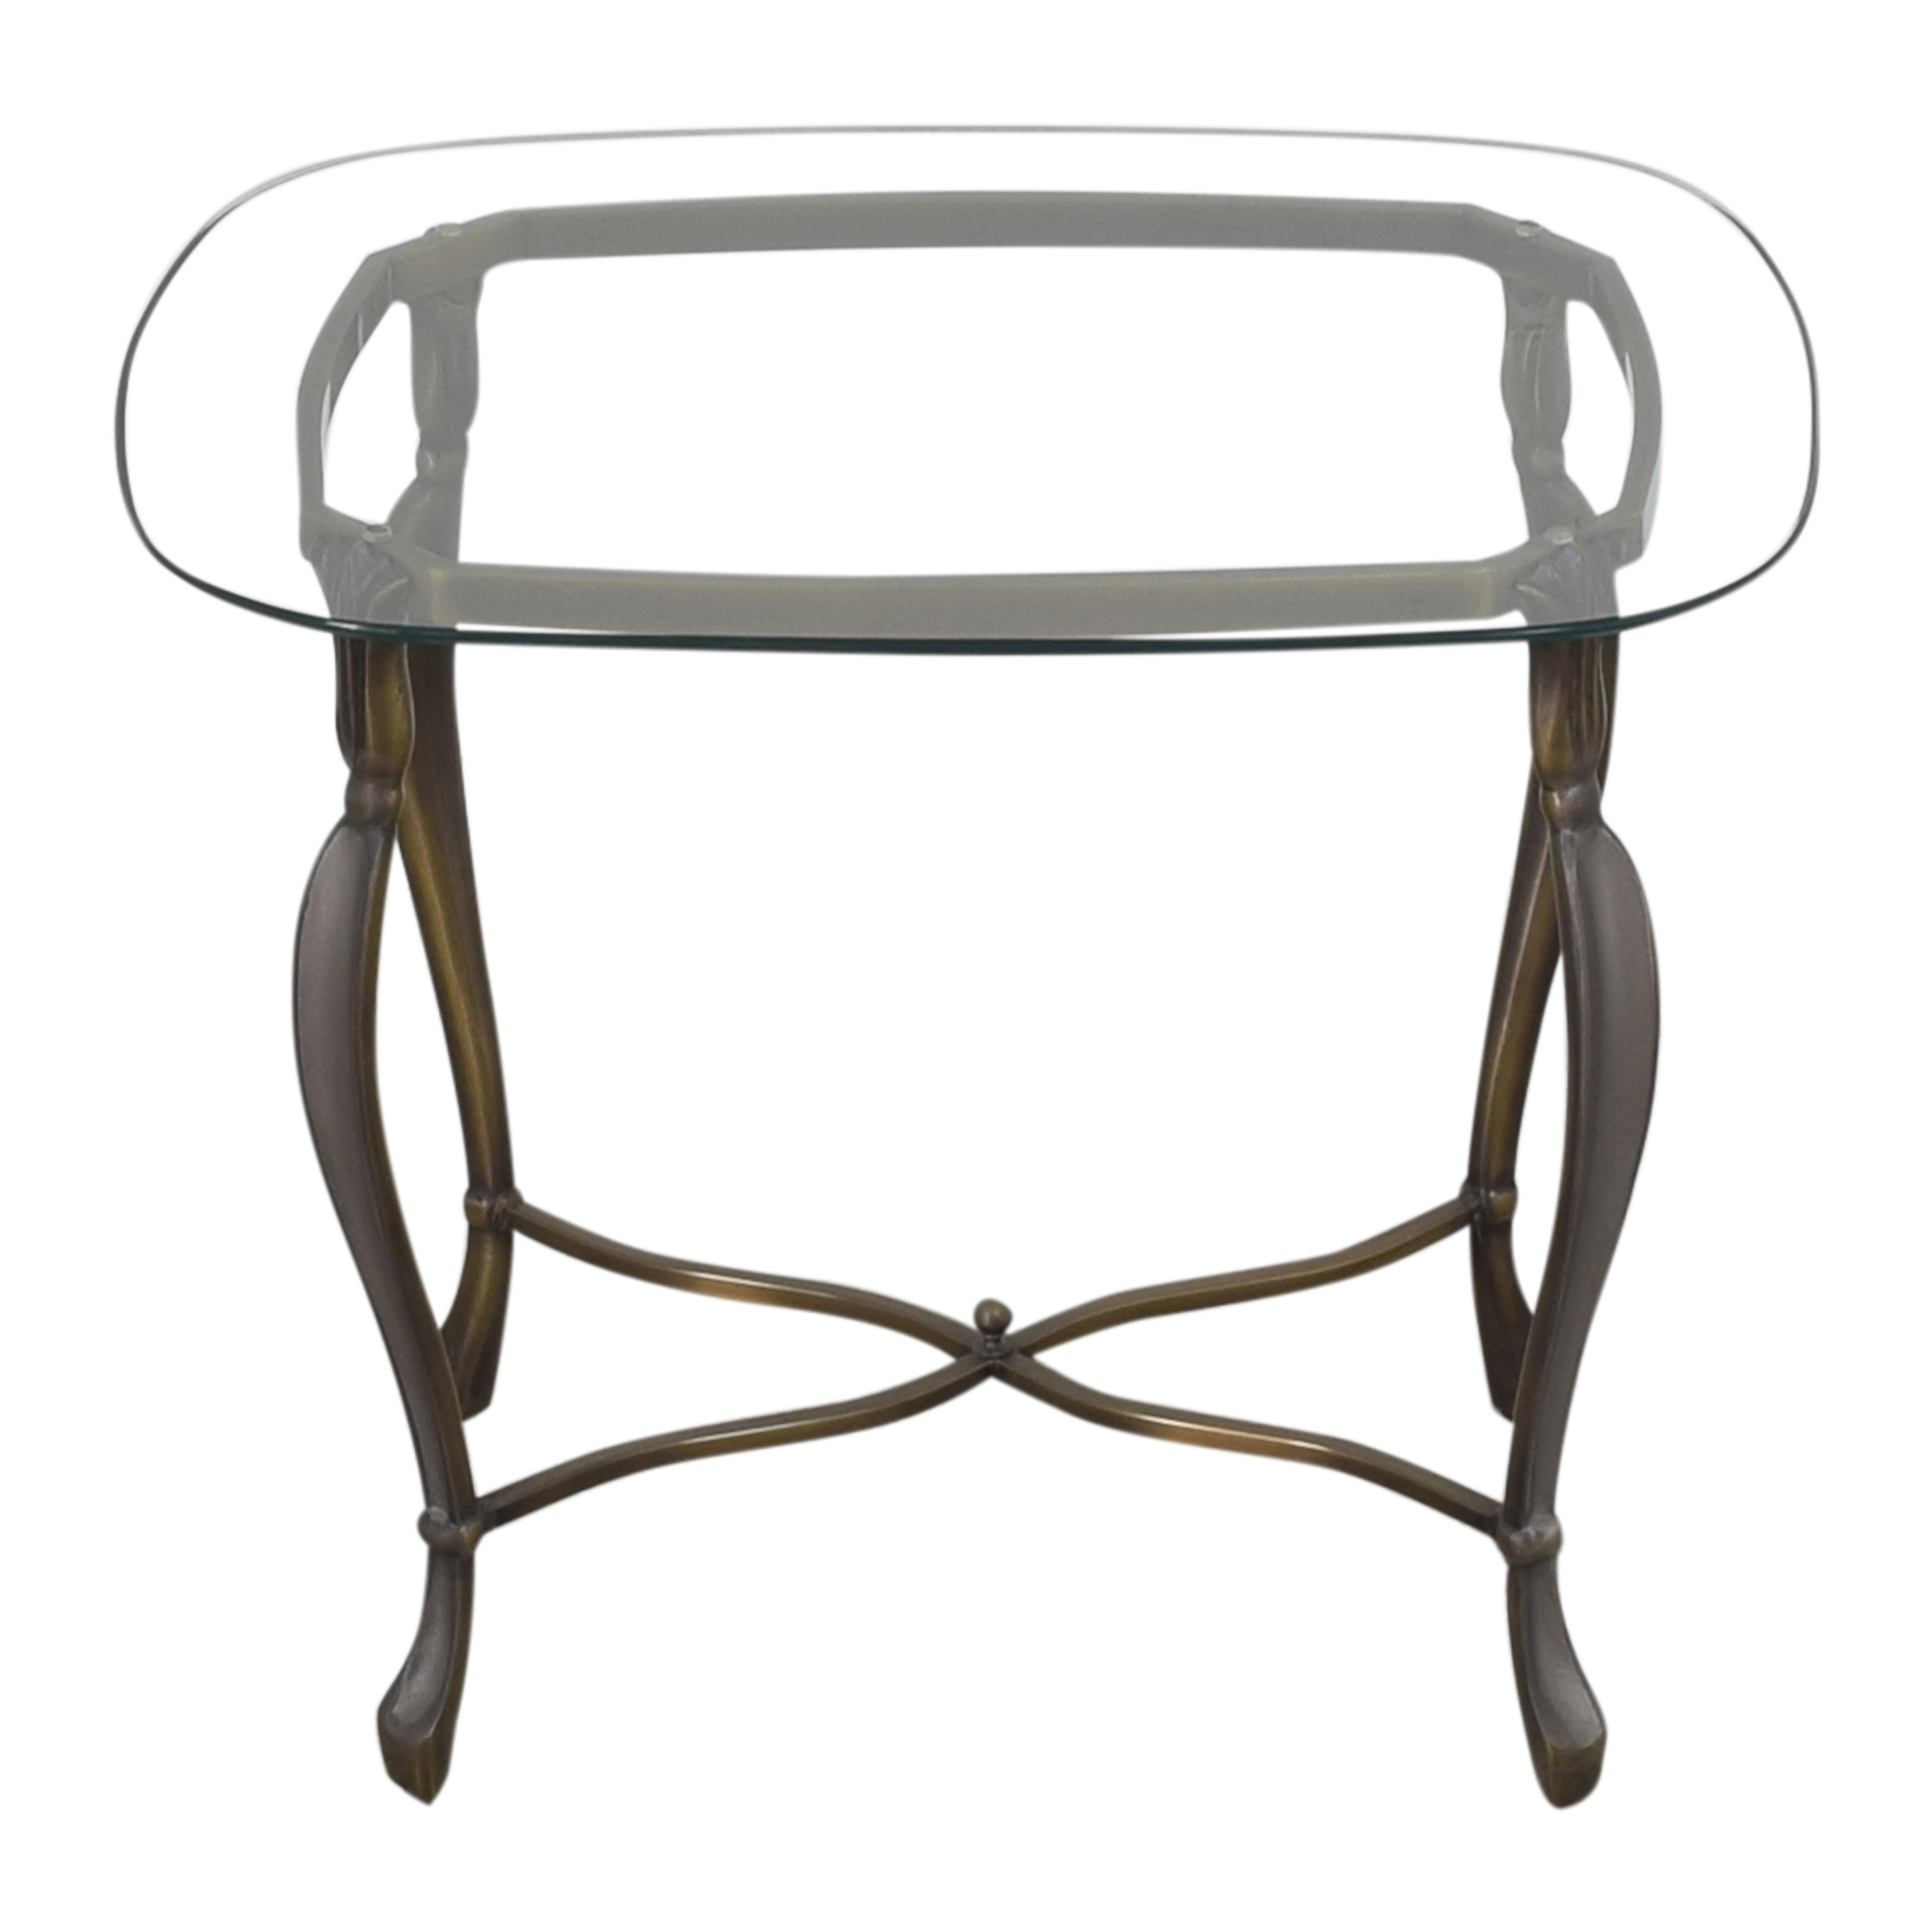 Rounded Rectangular End Table